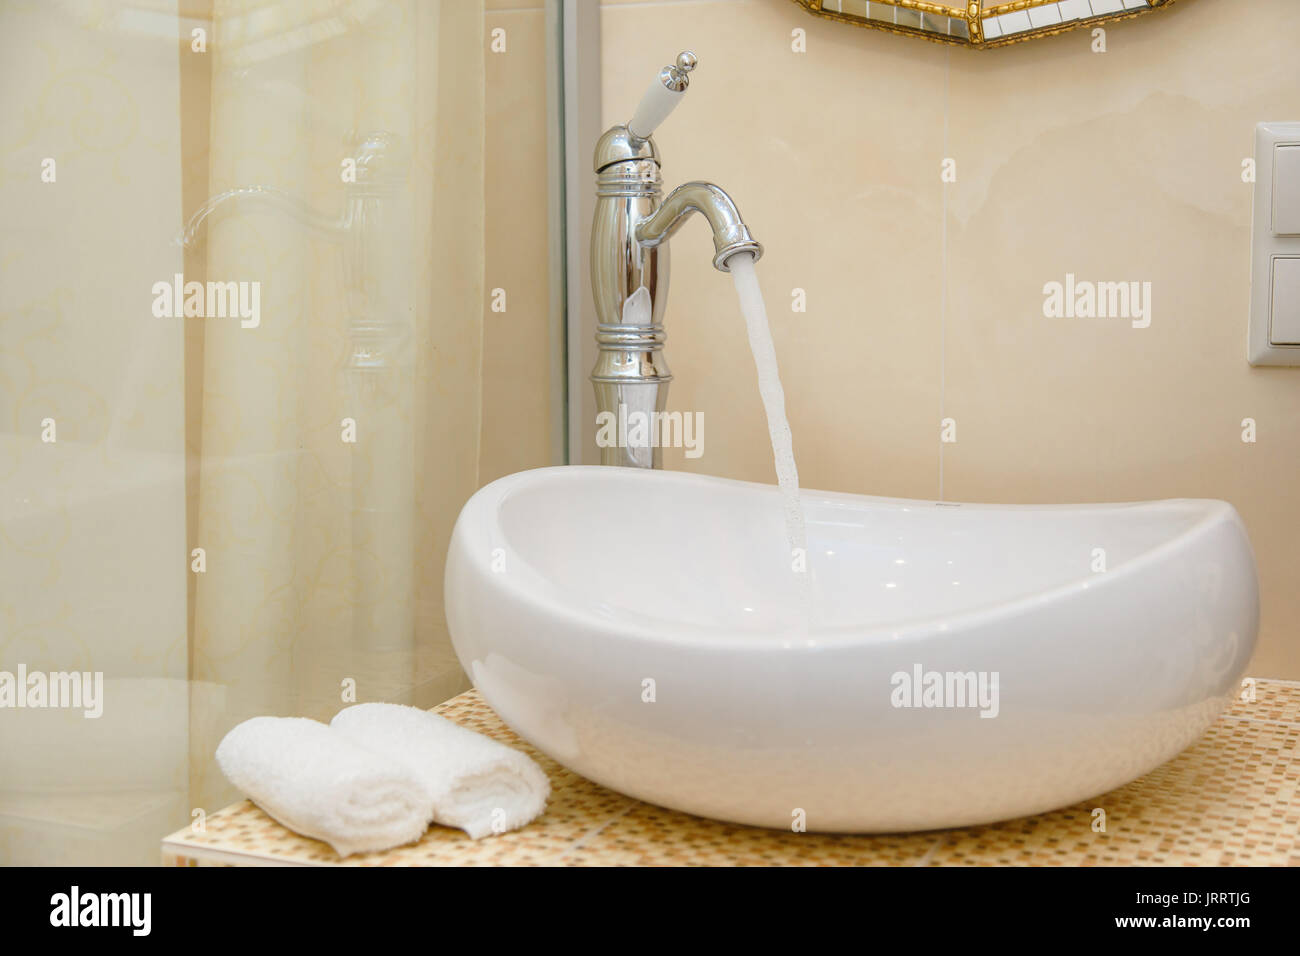 Water pours out of the tap. Modern bathroom interior. - Stock Image